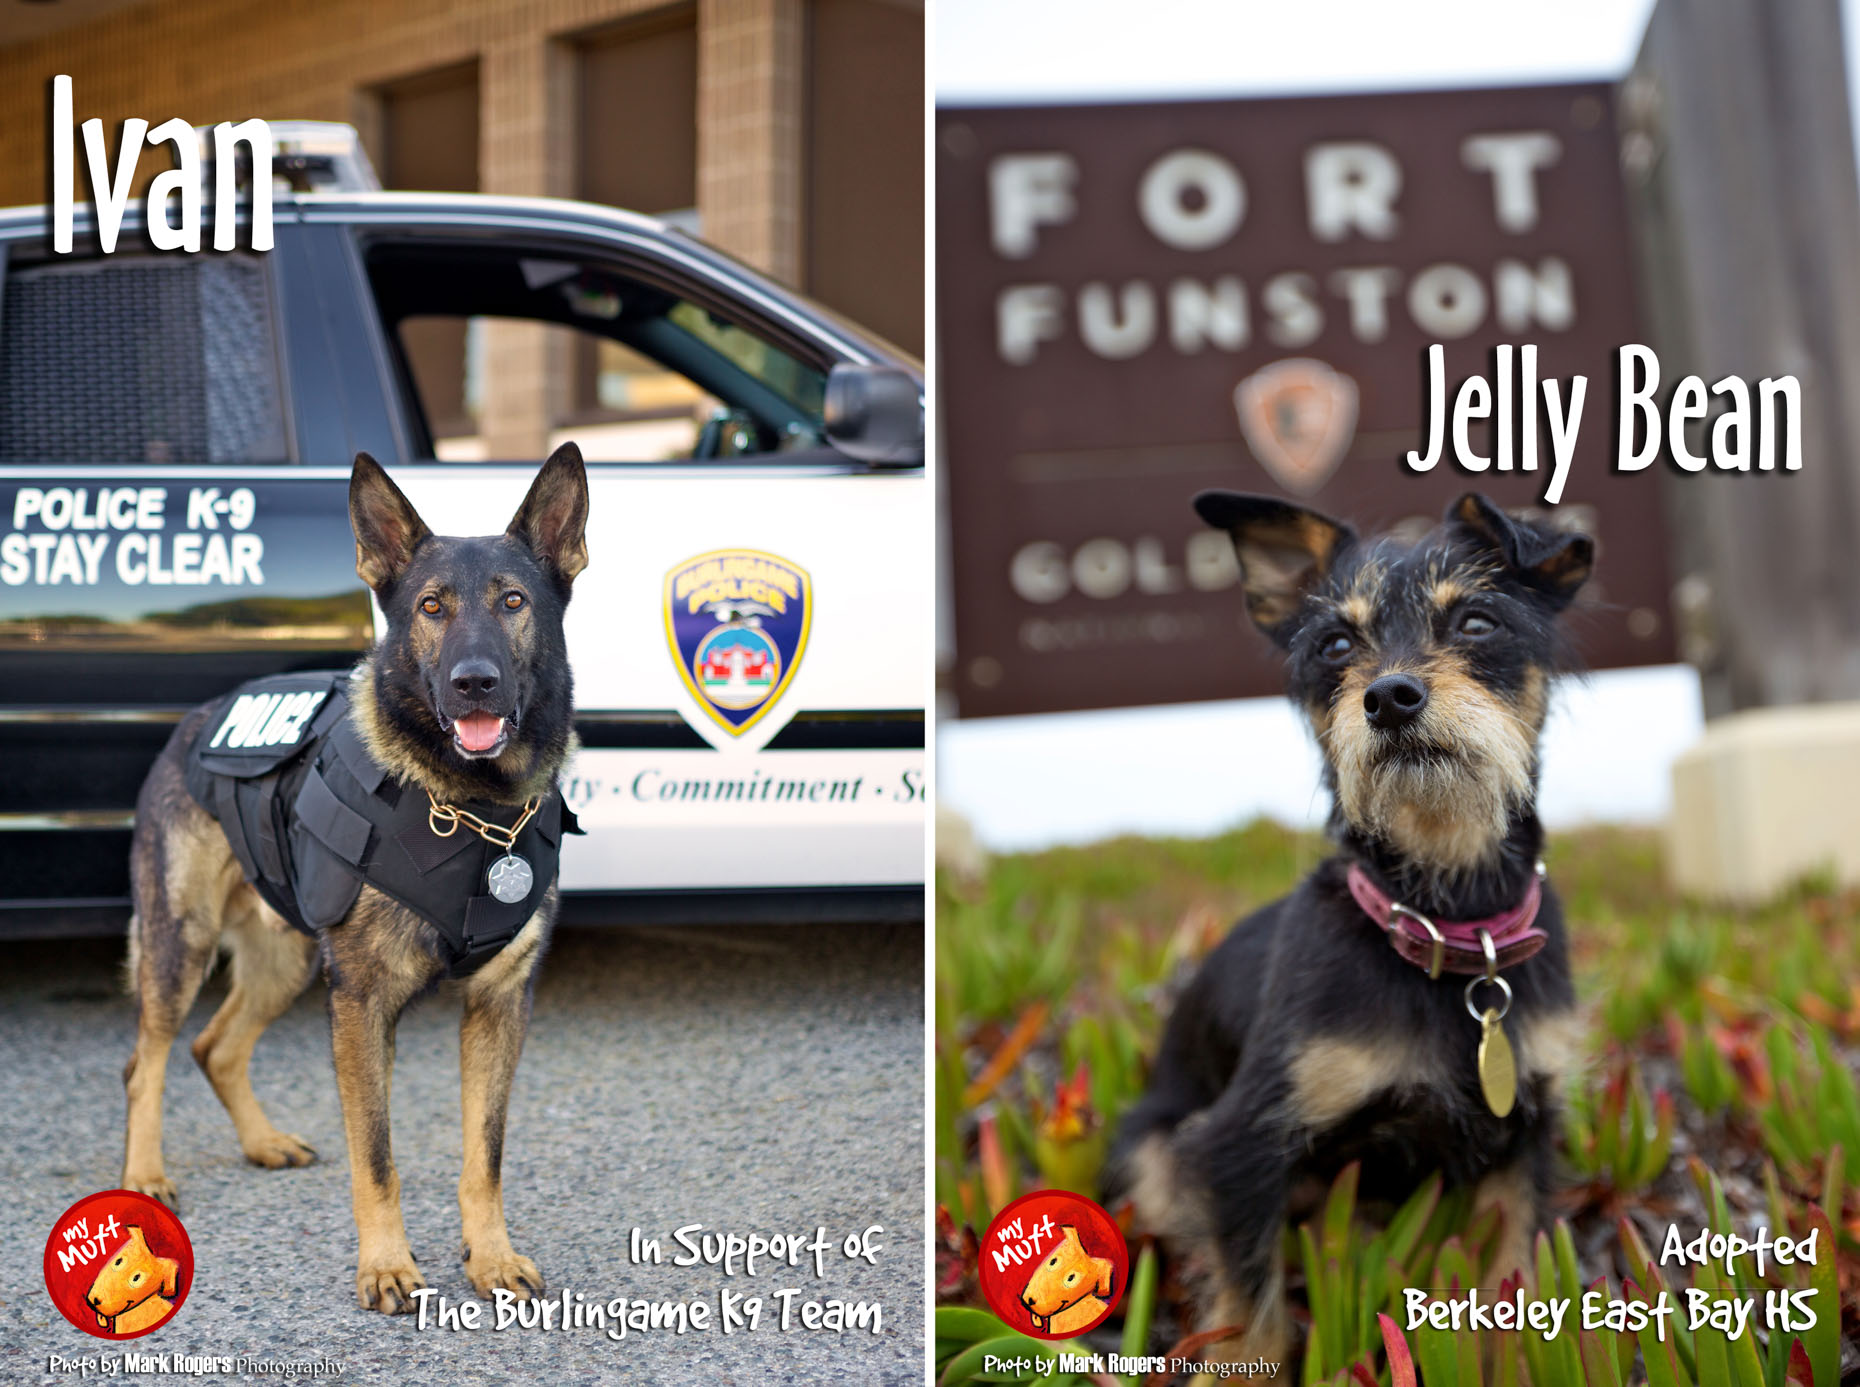 My Mutt Rescue Poster | Dog at Fort Funston and K9 Police Dog by Mark Rogers